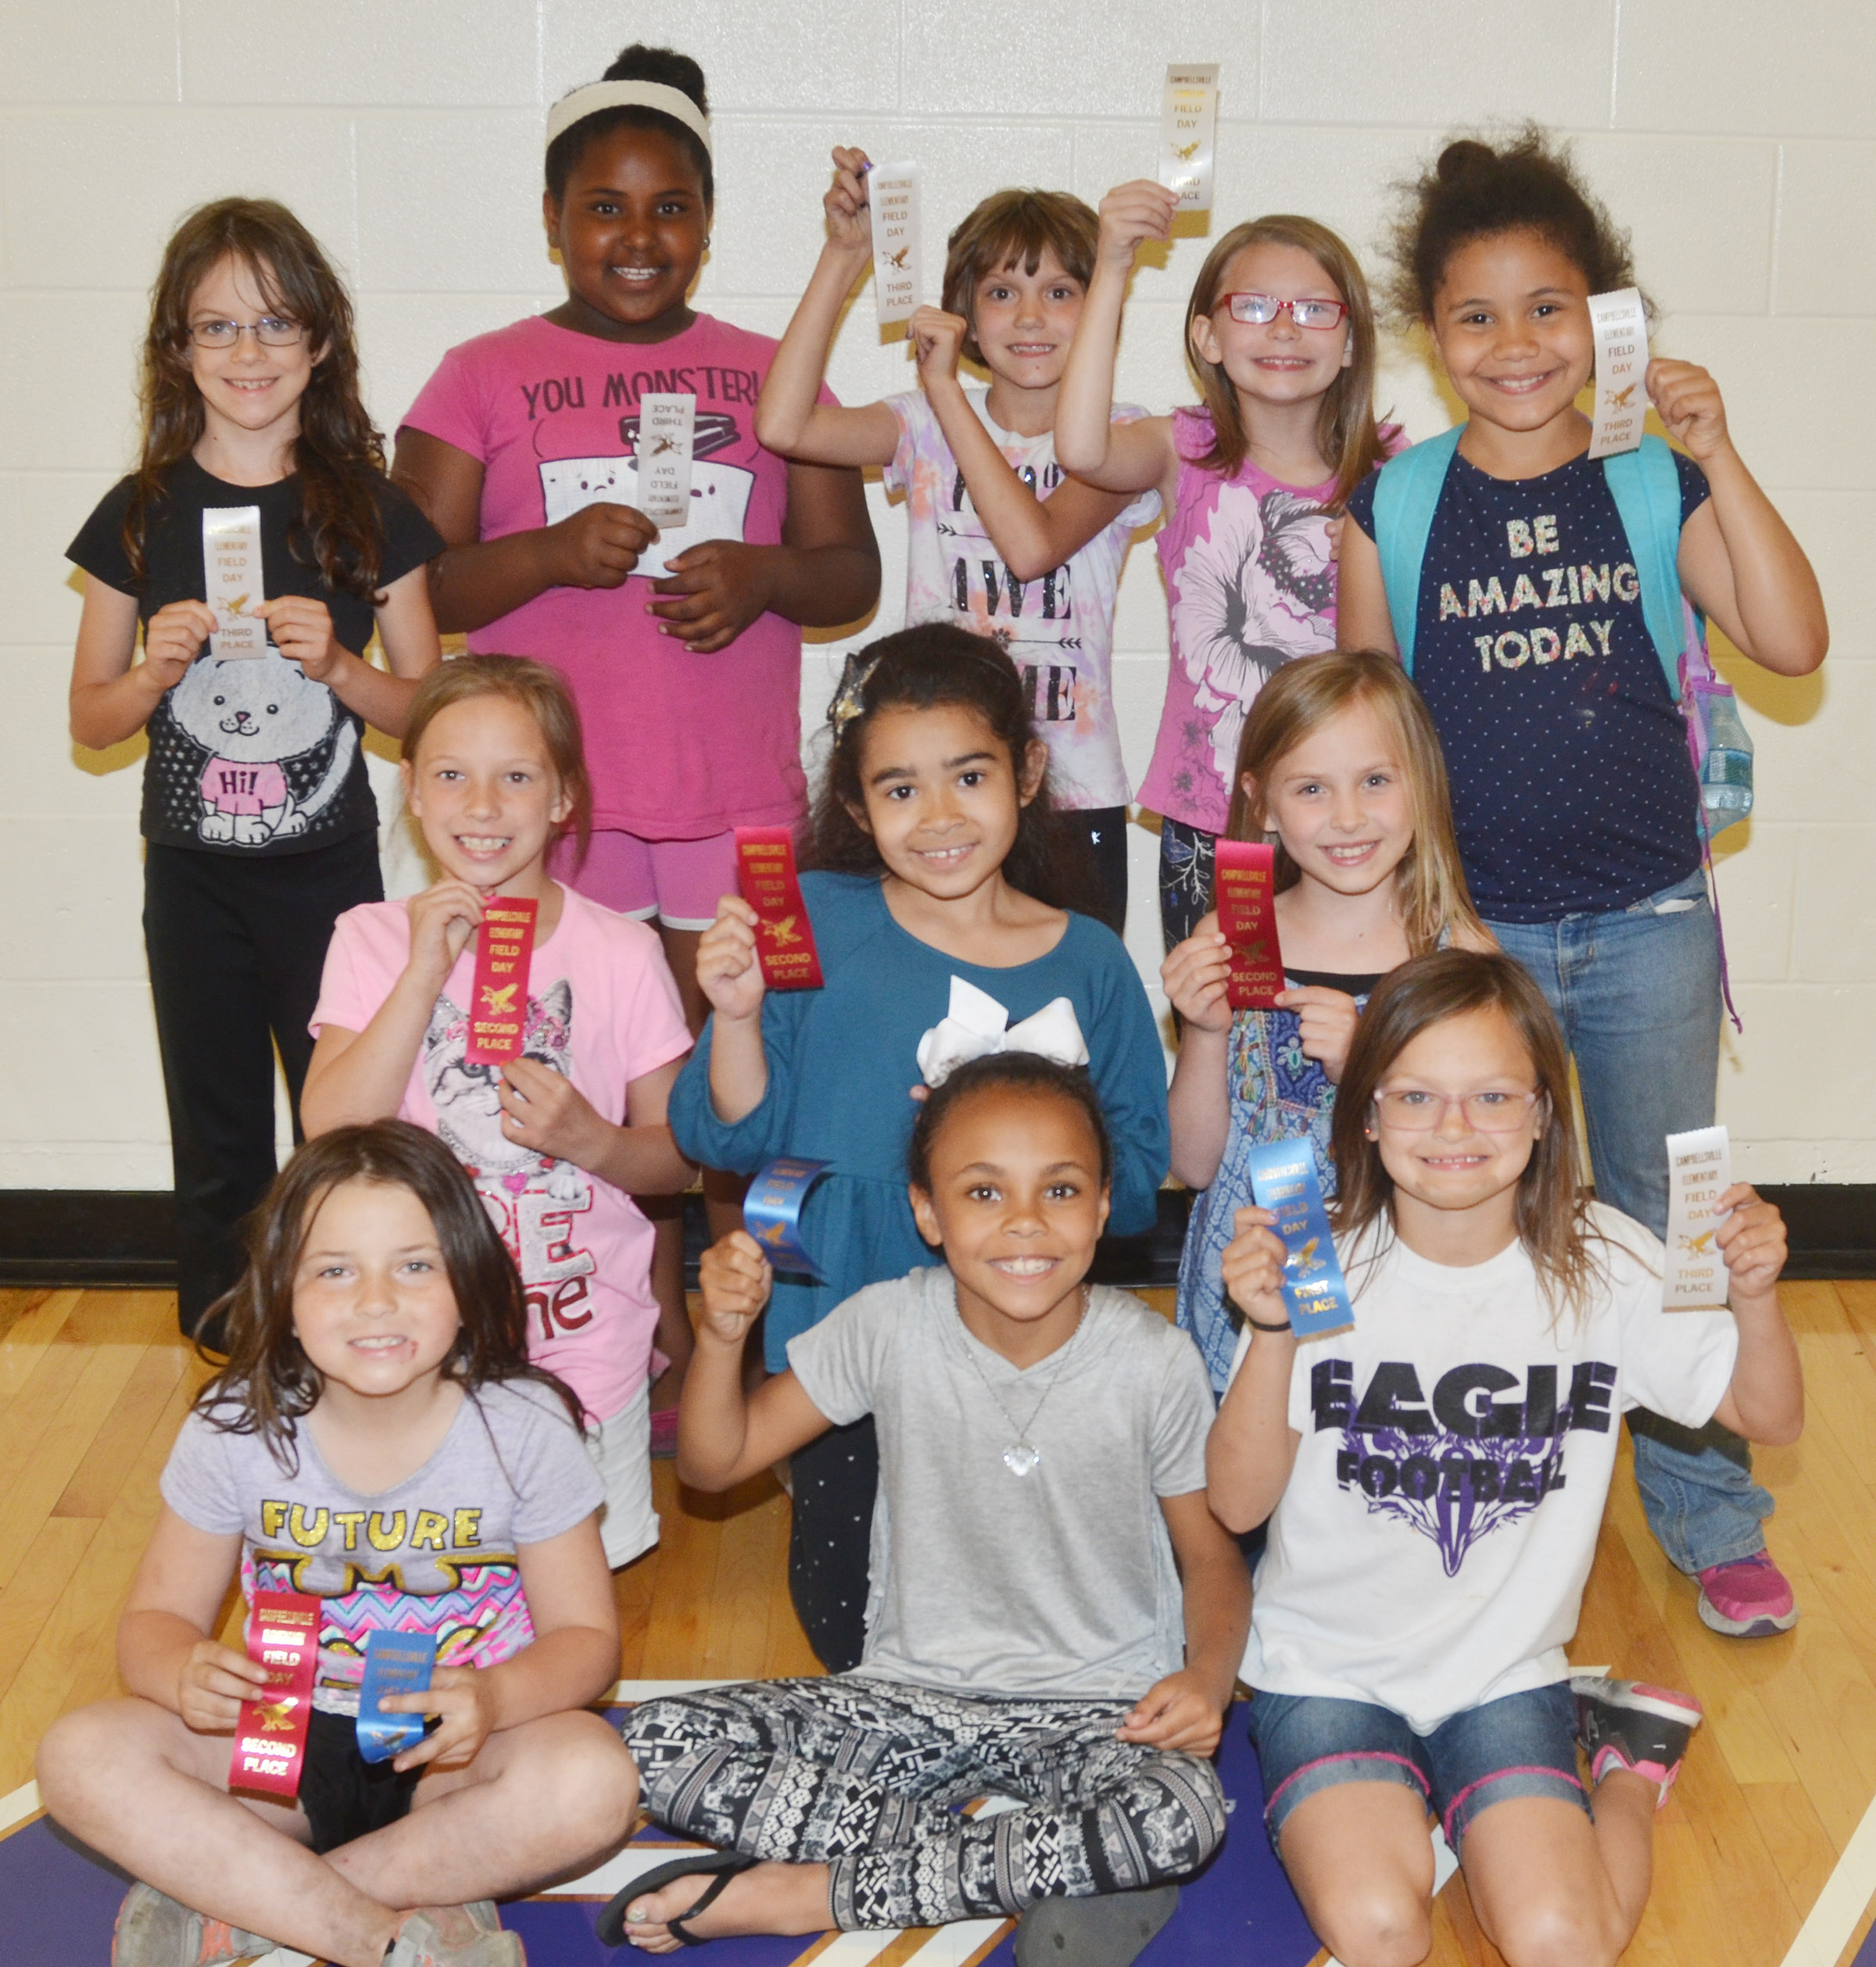 CES second-grade girls who were classroom winners in the 50-yard dash are, from left, front, Kendall Cruz, Braelyn Taylor and KayLee Lamer, first place winners. Second row, Alyah Meadows, Sophia Santos and Ava Ellis, second place winners. Back, Lilly Wise, Ajada Smith, Baylee Pike, Sammantha Wooley and Alex Wilson, third place winners. Absent from the photo are Analeigh Foster, a first place winner, and Yazlyn Sutton, a second place winner. Overall, Analeigh Foster was first, Kendall Cruz was second and KayLee Lamer was third.